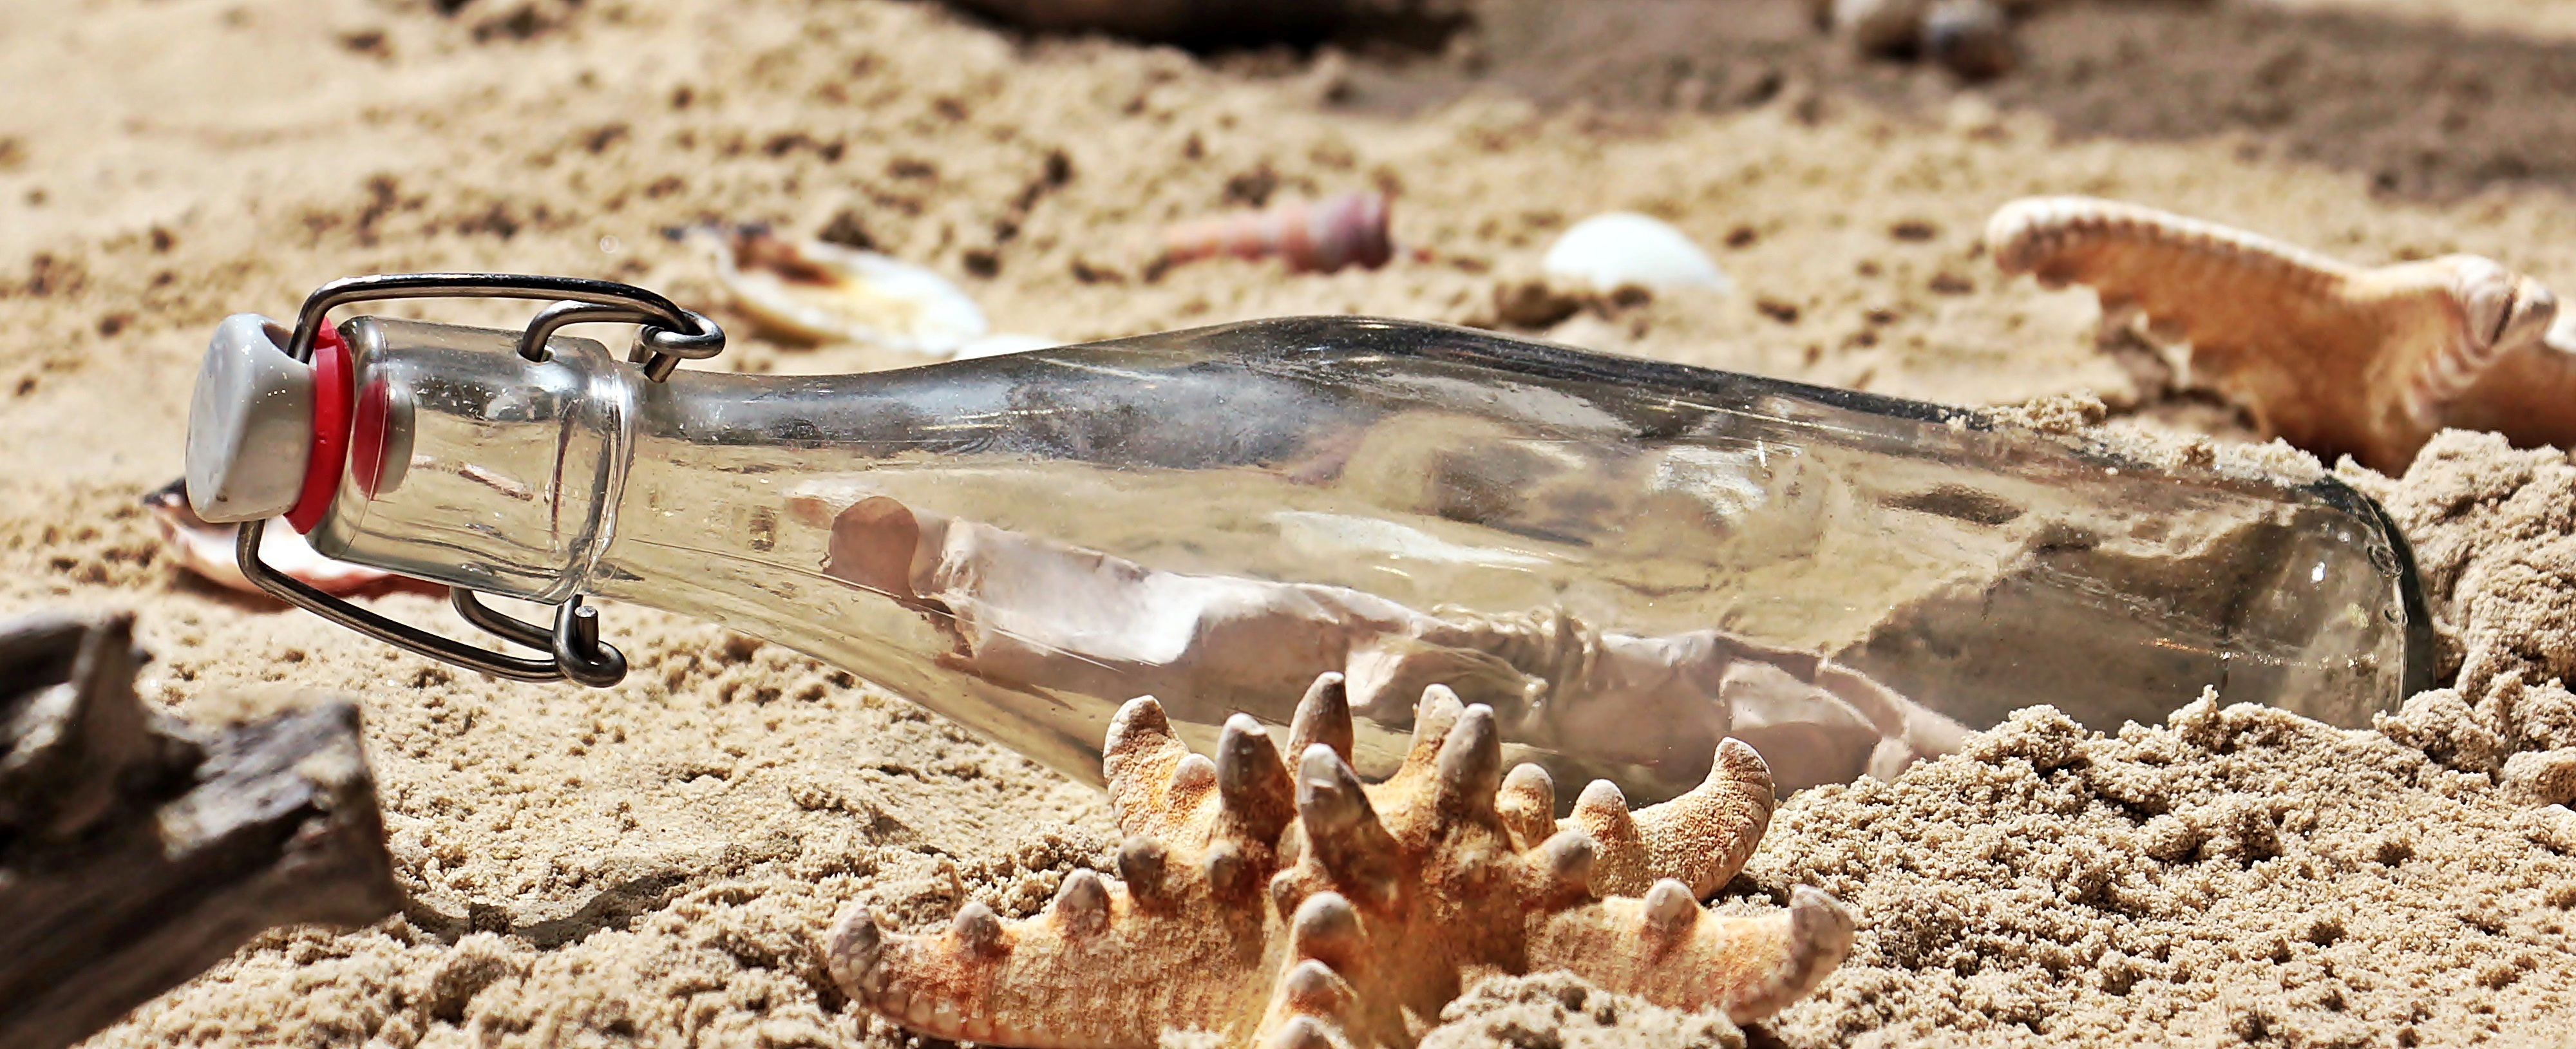 A bottle lies on its side in the sand. Inside is a rolled up message on aged paper.